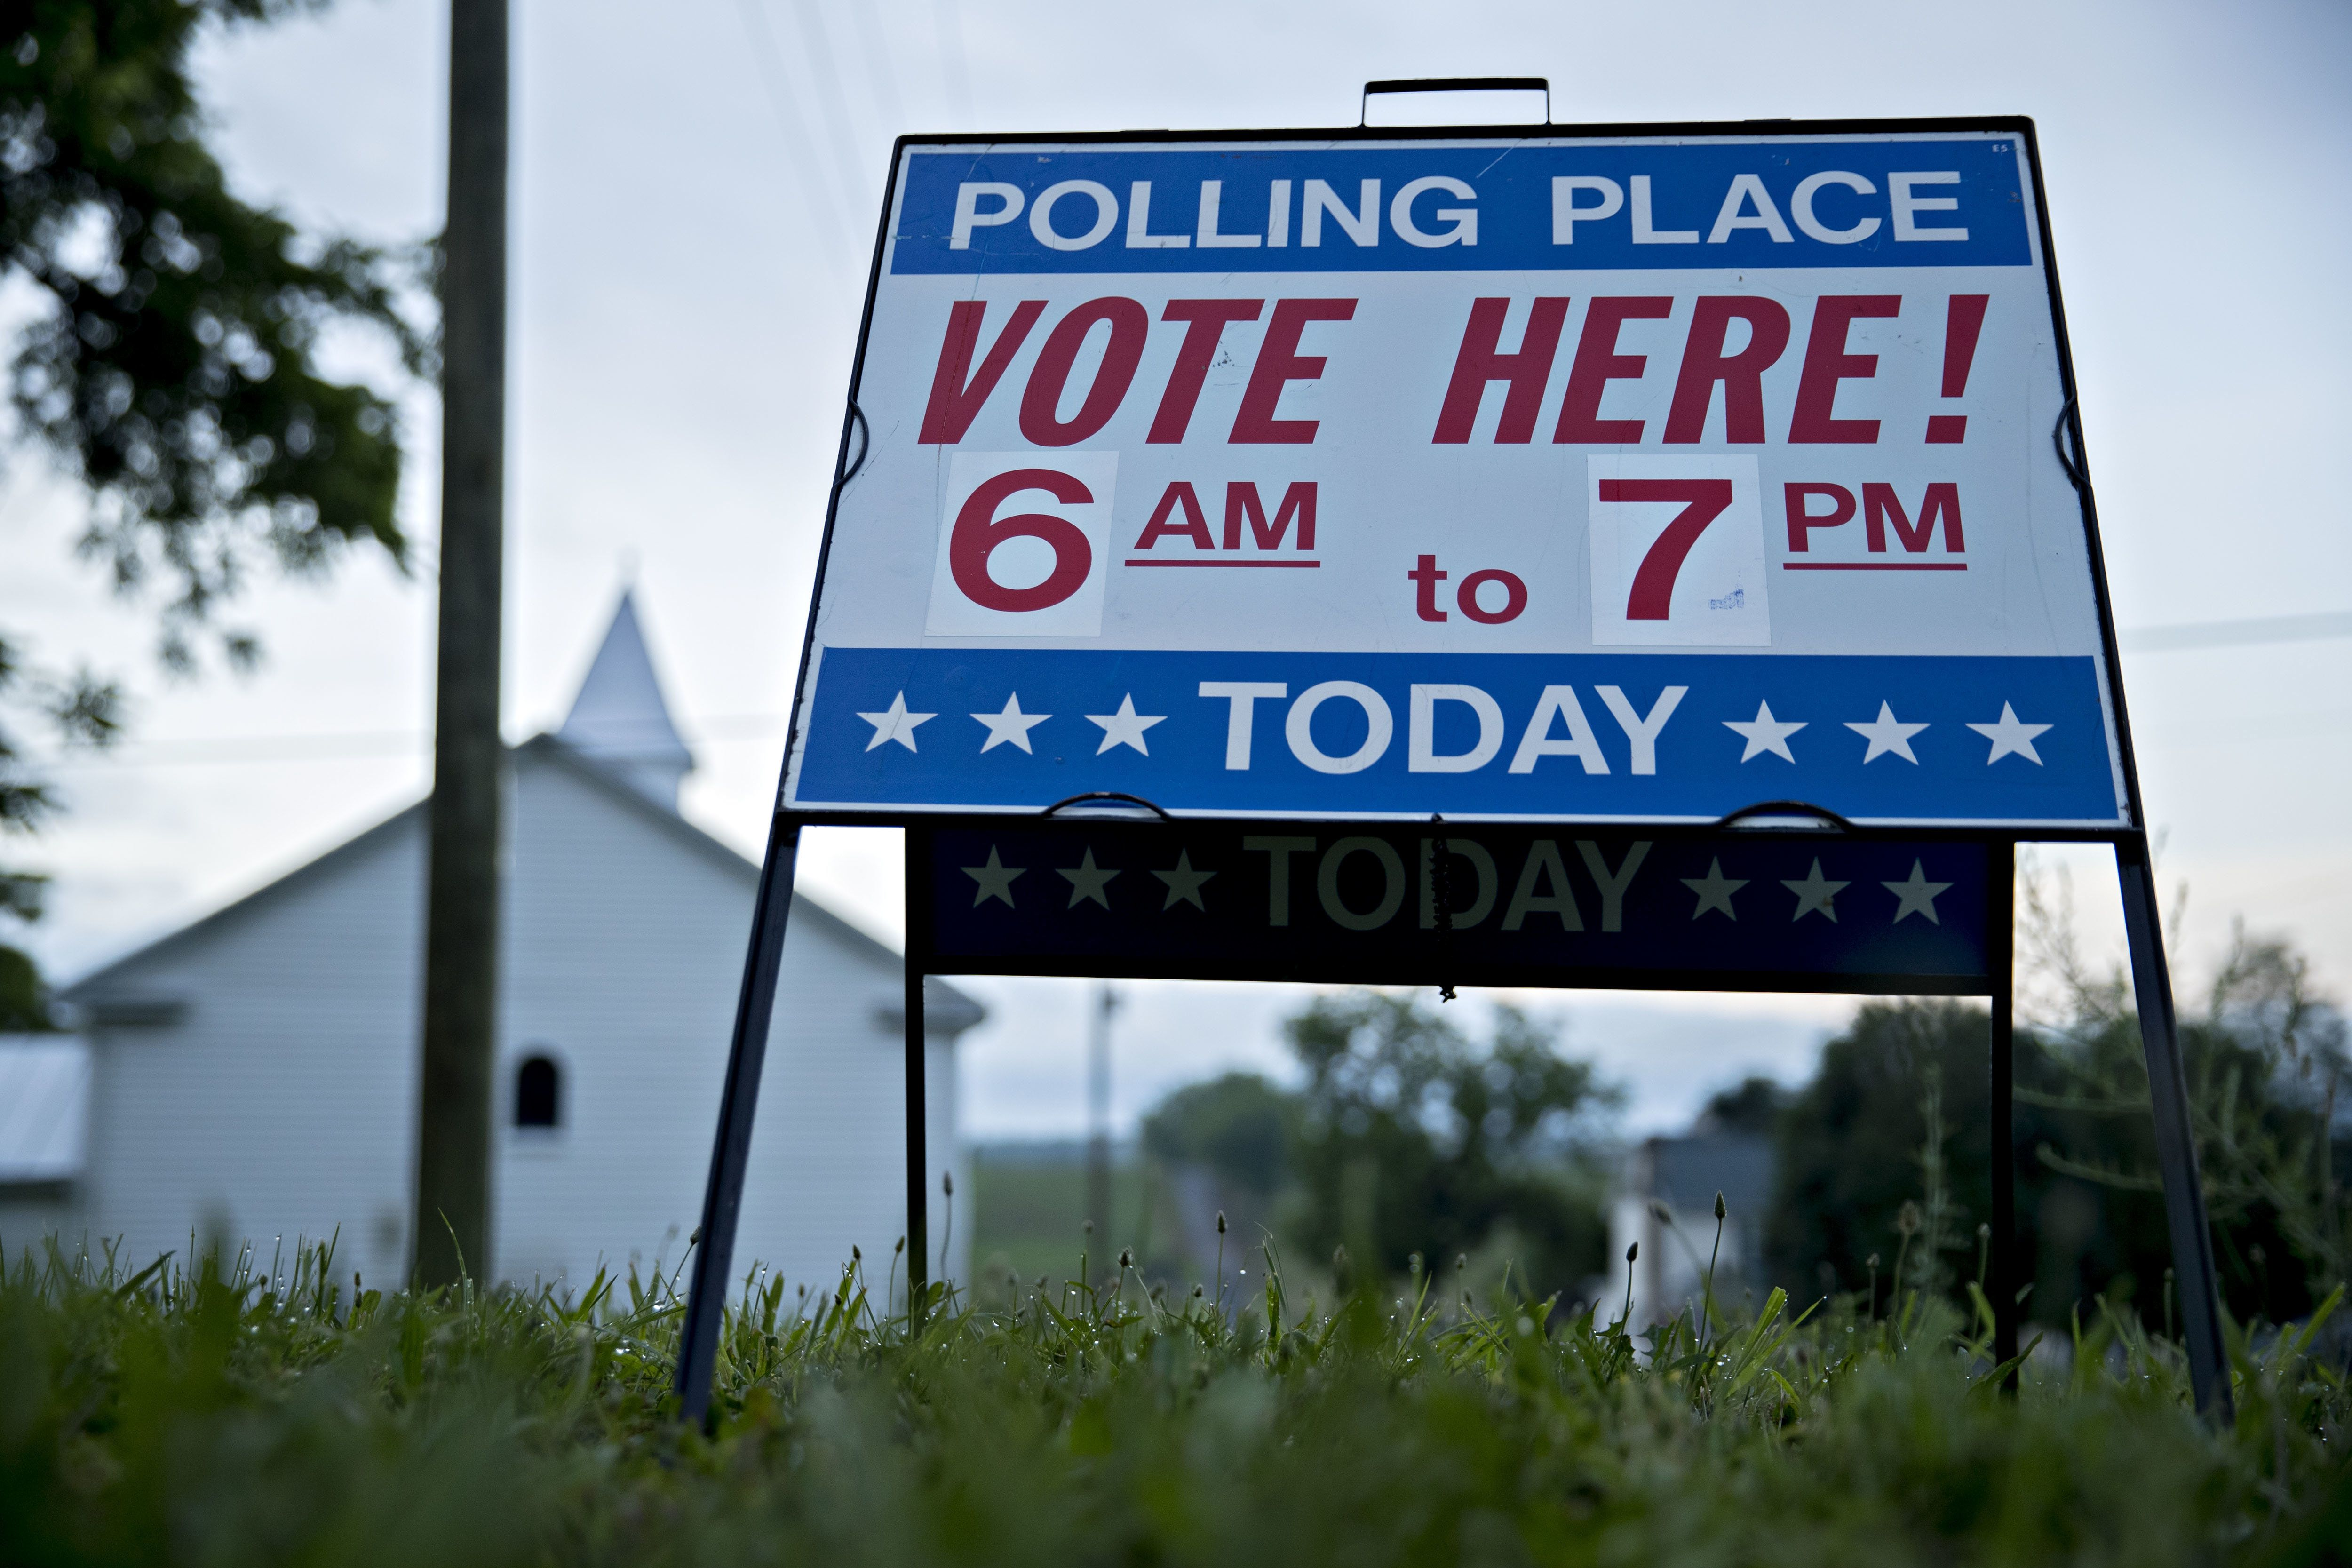 A 'Vote Here!' sign stands outside a polling location during the primary election in Lebanon Church, Virginia, U.S., on Tuesday, June 12, 2018. In the Shenandoah Valley's 6th Congressional district, four Democrats are running in the primary for the open seat being vacated by retiring Republican Bob Goodlatte. Photographer: Andrew Harrer/Bloomberg via Getty Images